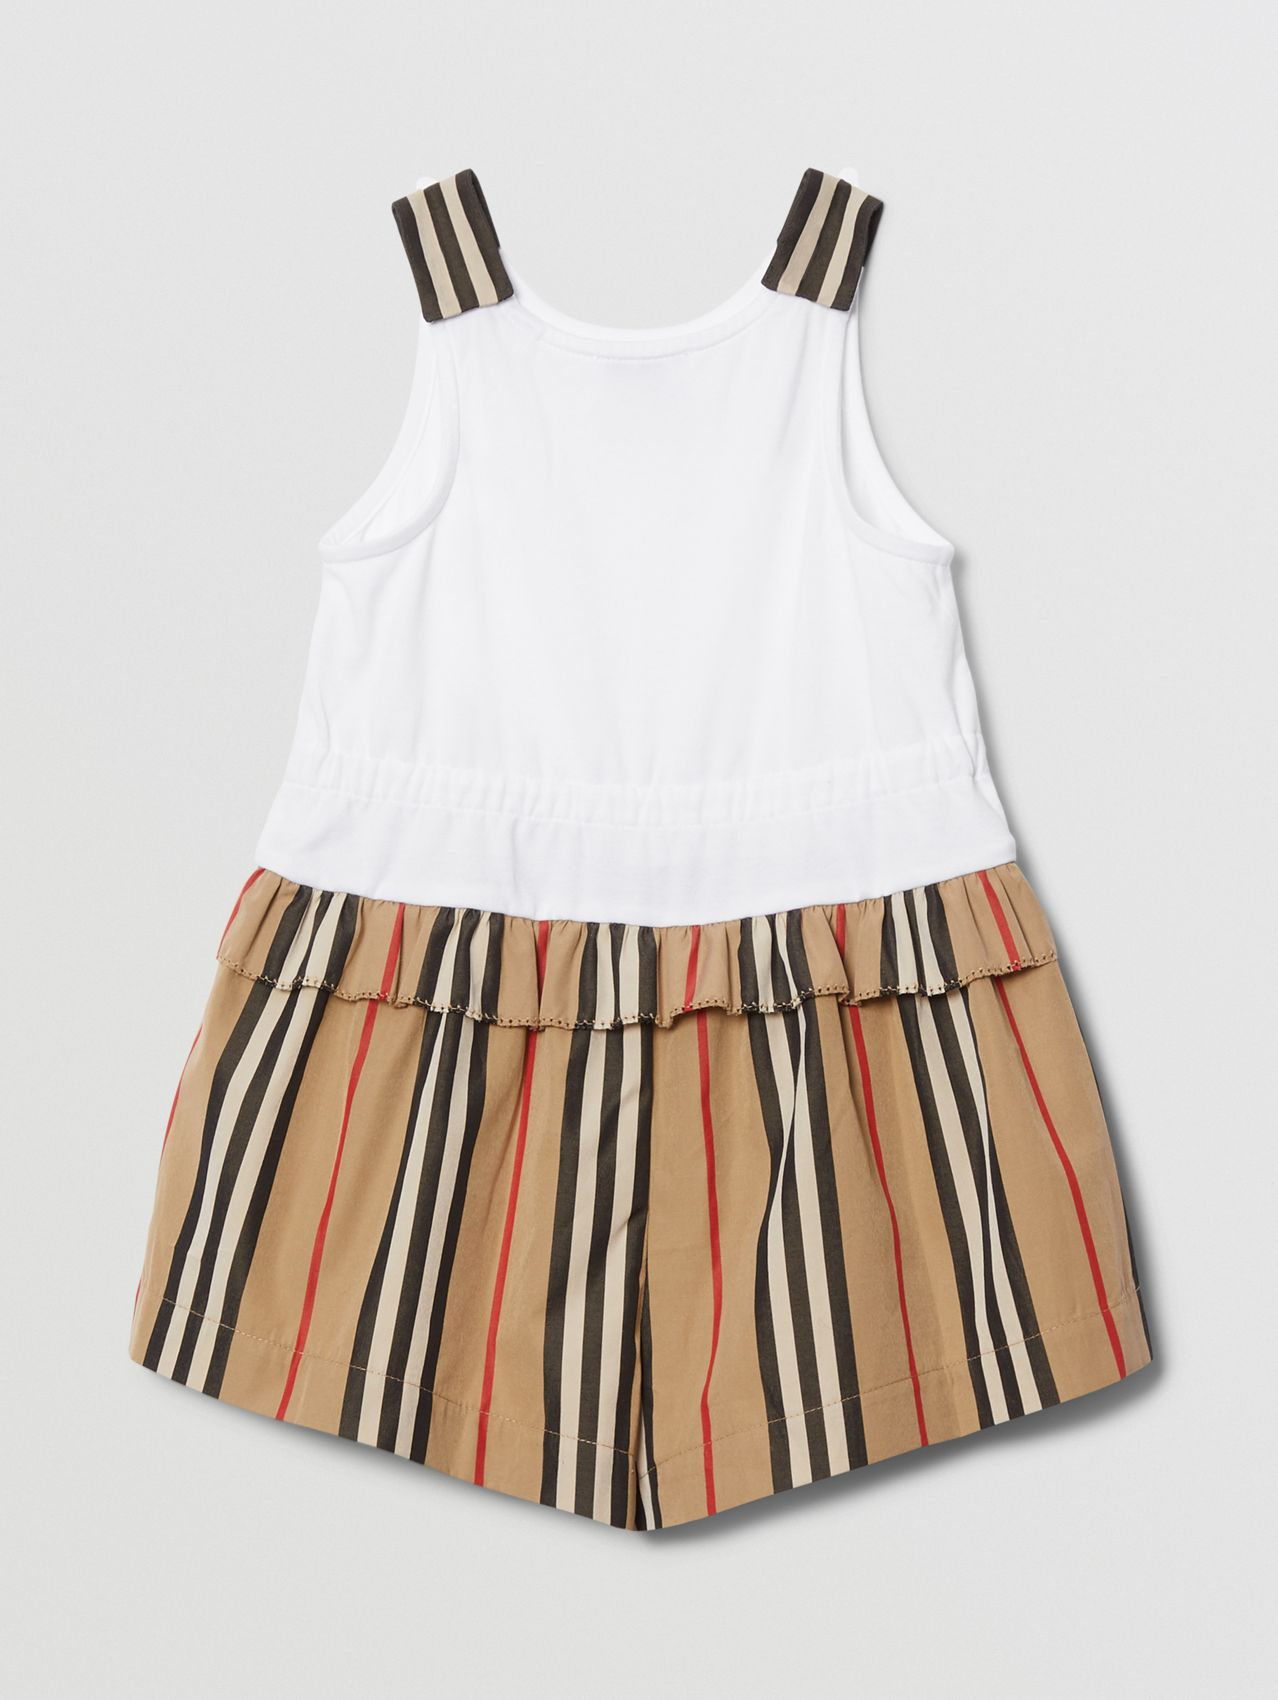 Monogram Motif Icon Stripe Detail Cotton Playsuit in Archive Beige